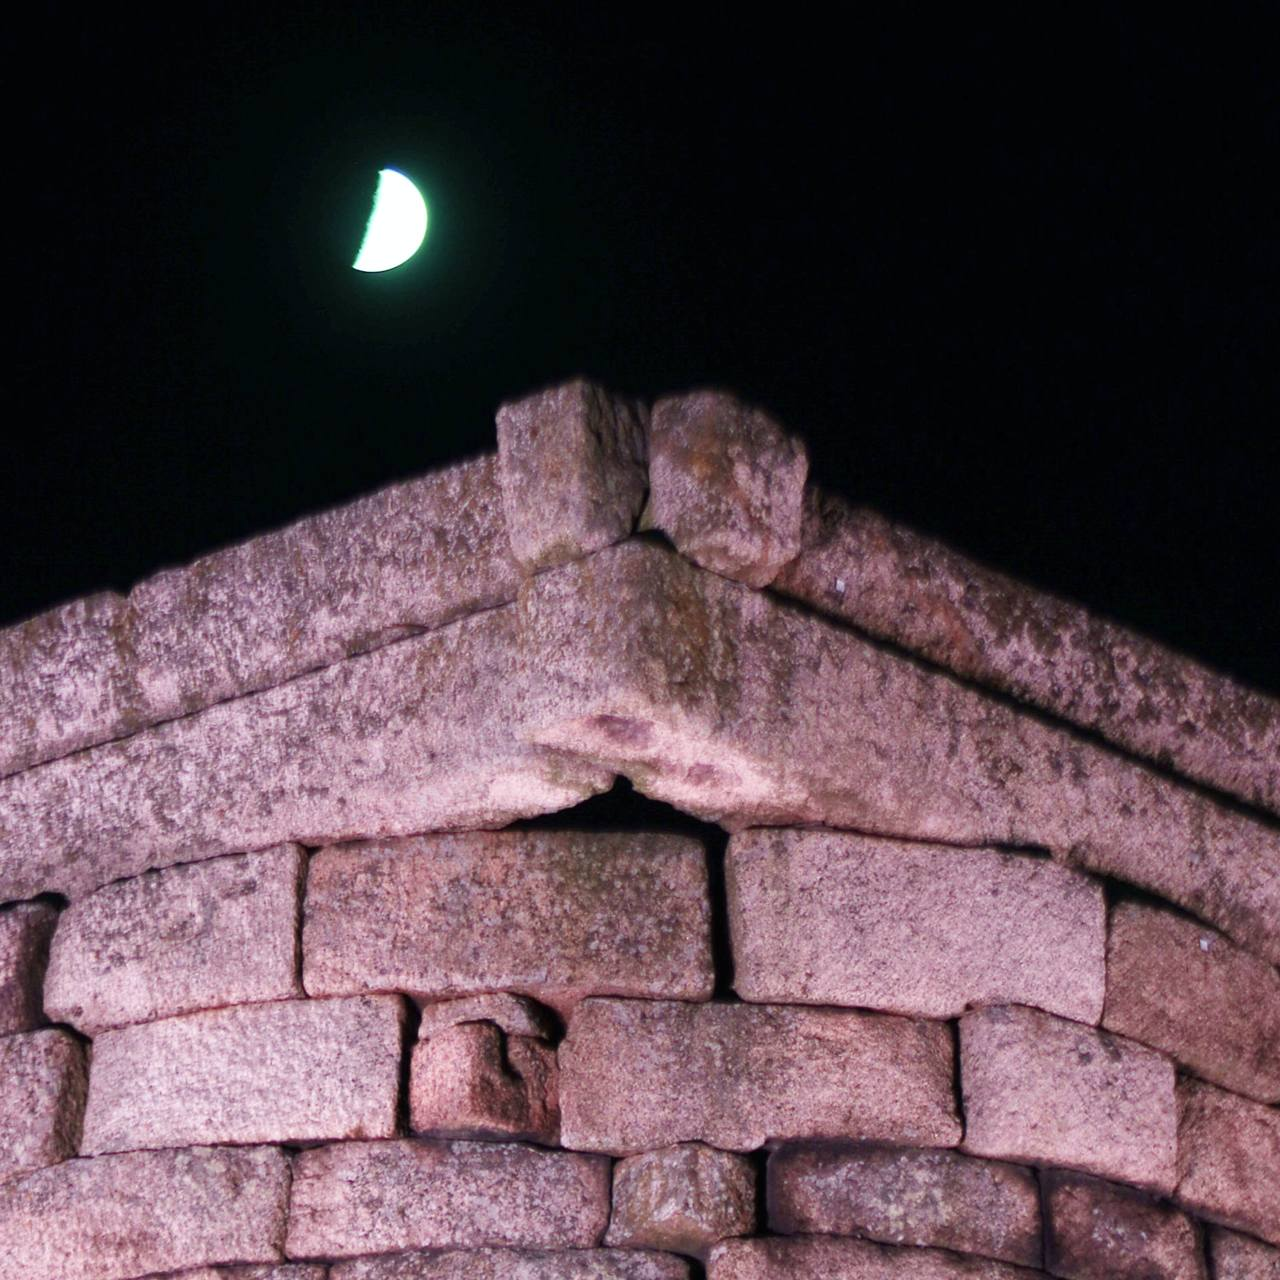 Cheomseongdae, the oldest surviving astronomical observatory in the world, was constructed in 633 in Silla Kingdom, in Gyeongju, North Gyeongsang Province.Photo © 2020 Hyungwon Kang